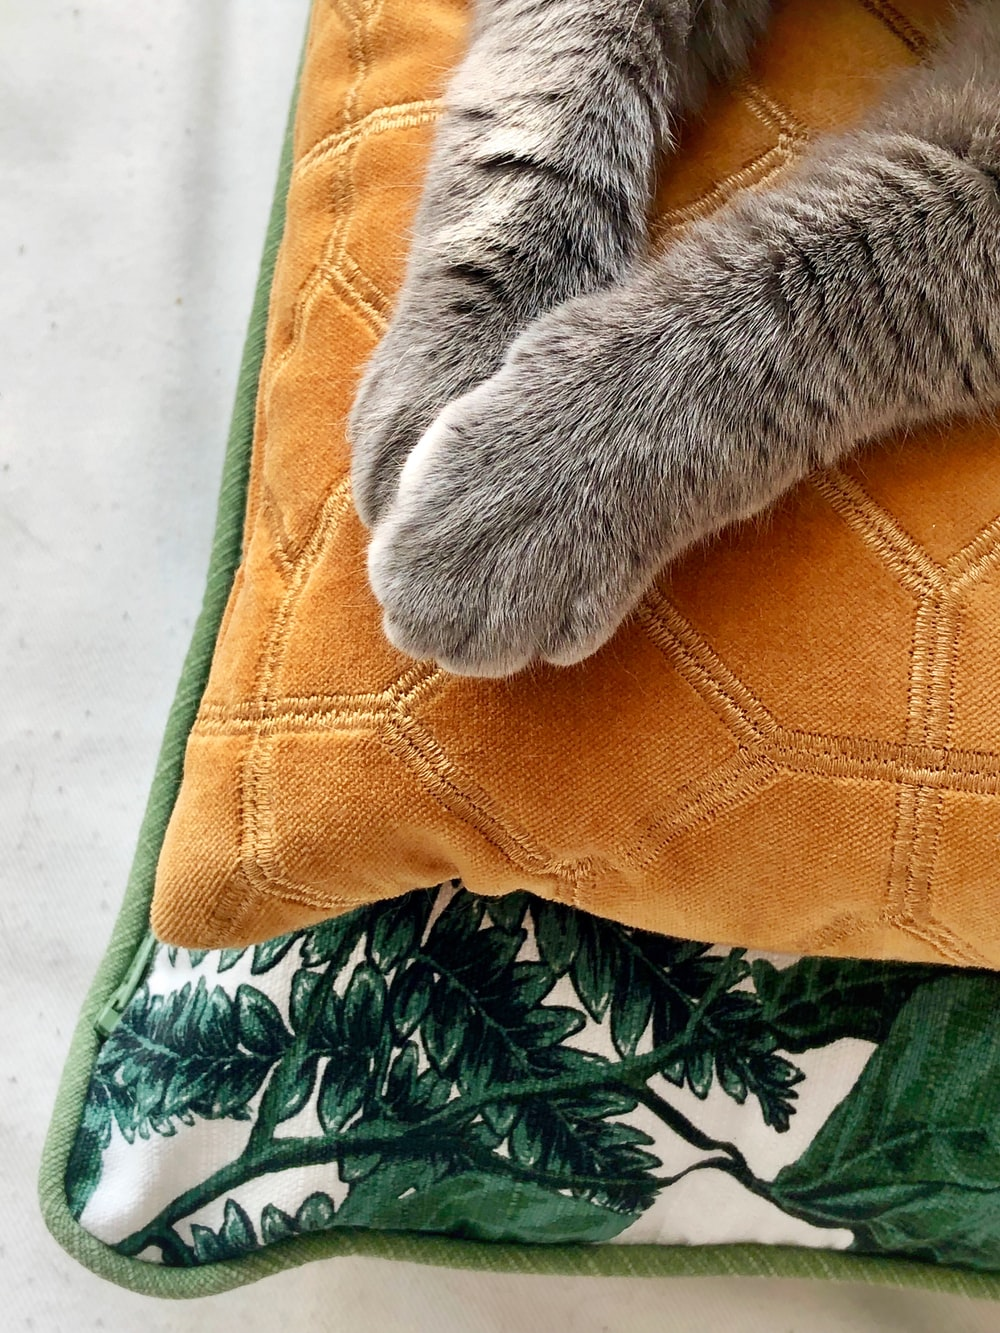 cat paw in a orange textile close-up photography